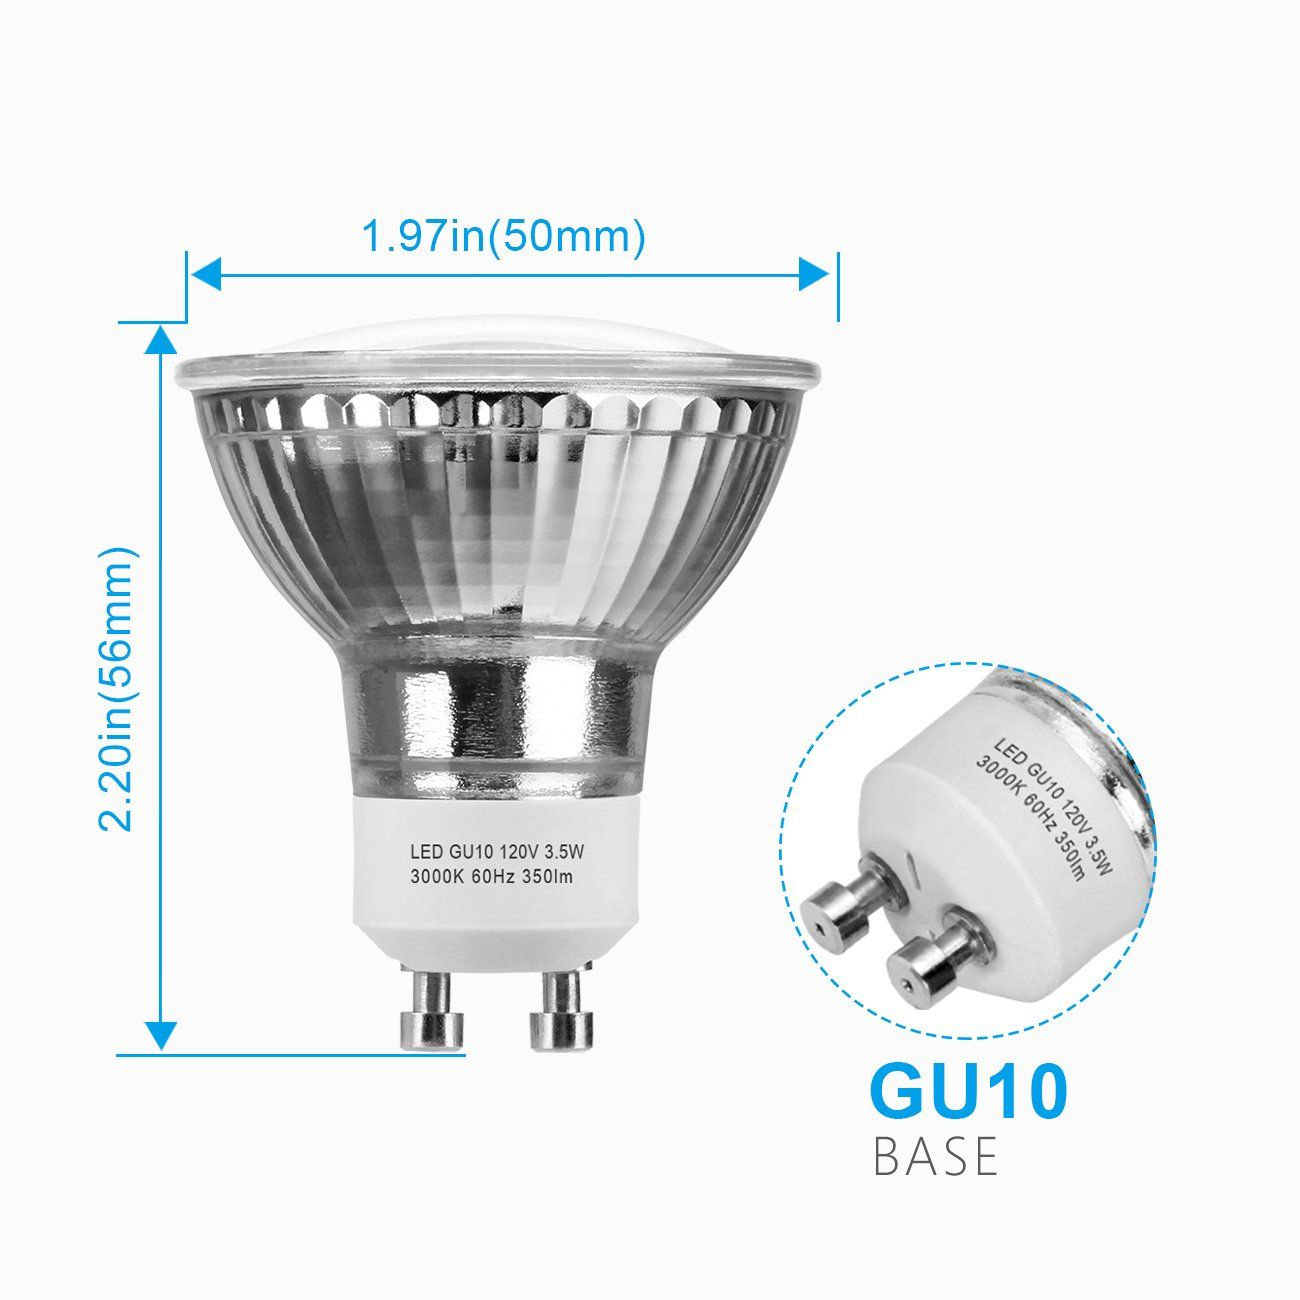 Gu10 Led Bulbs 50watt Halogen Equivalent Shine Hai Warm White Spotlight Bulbs Gu10 Base 3 5w Mr16 120volt Nondimmable Led Light Bulbs Led Bulb Spotlight Bulbs